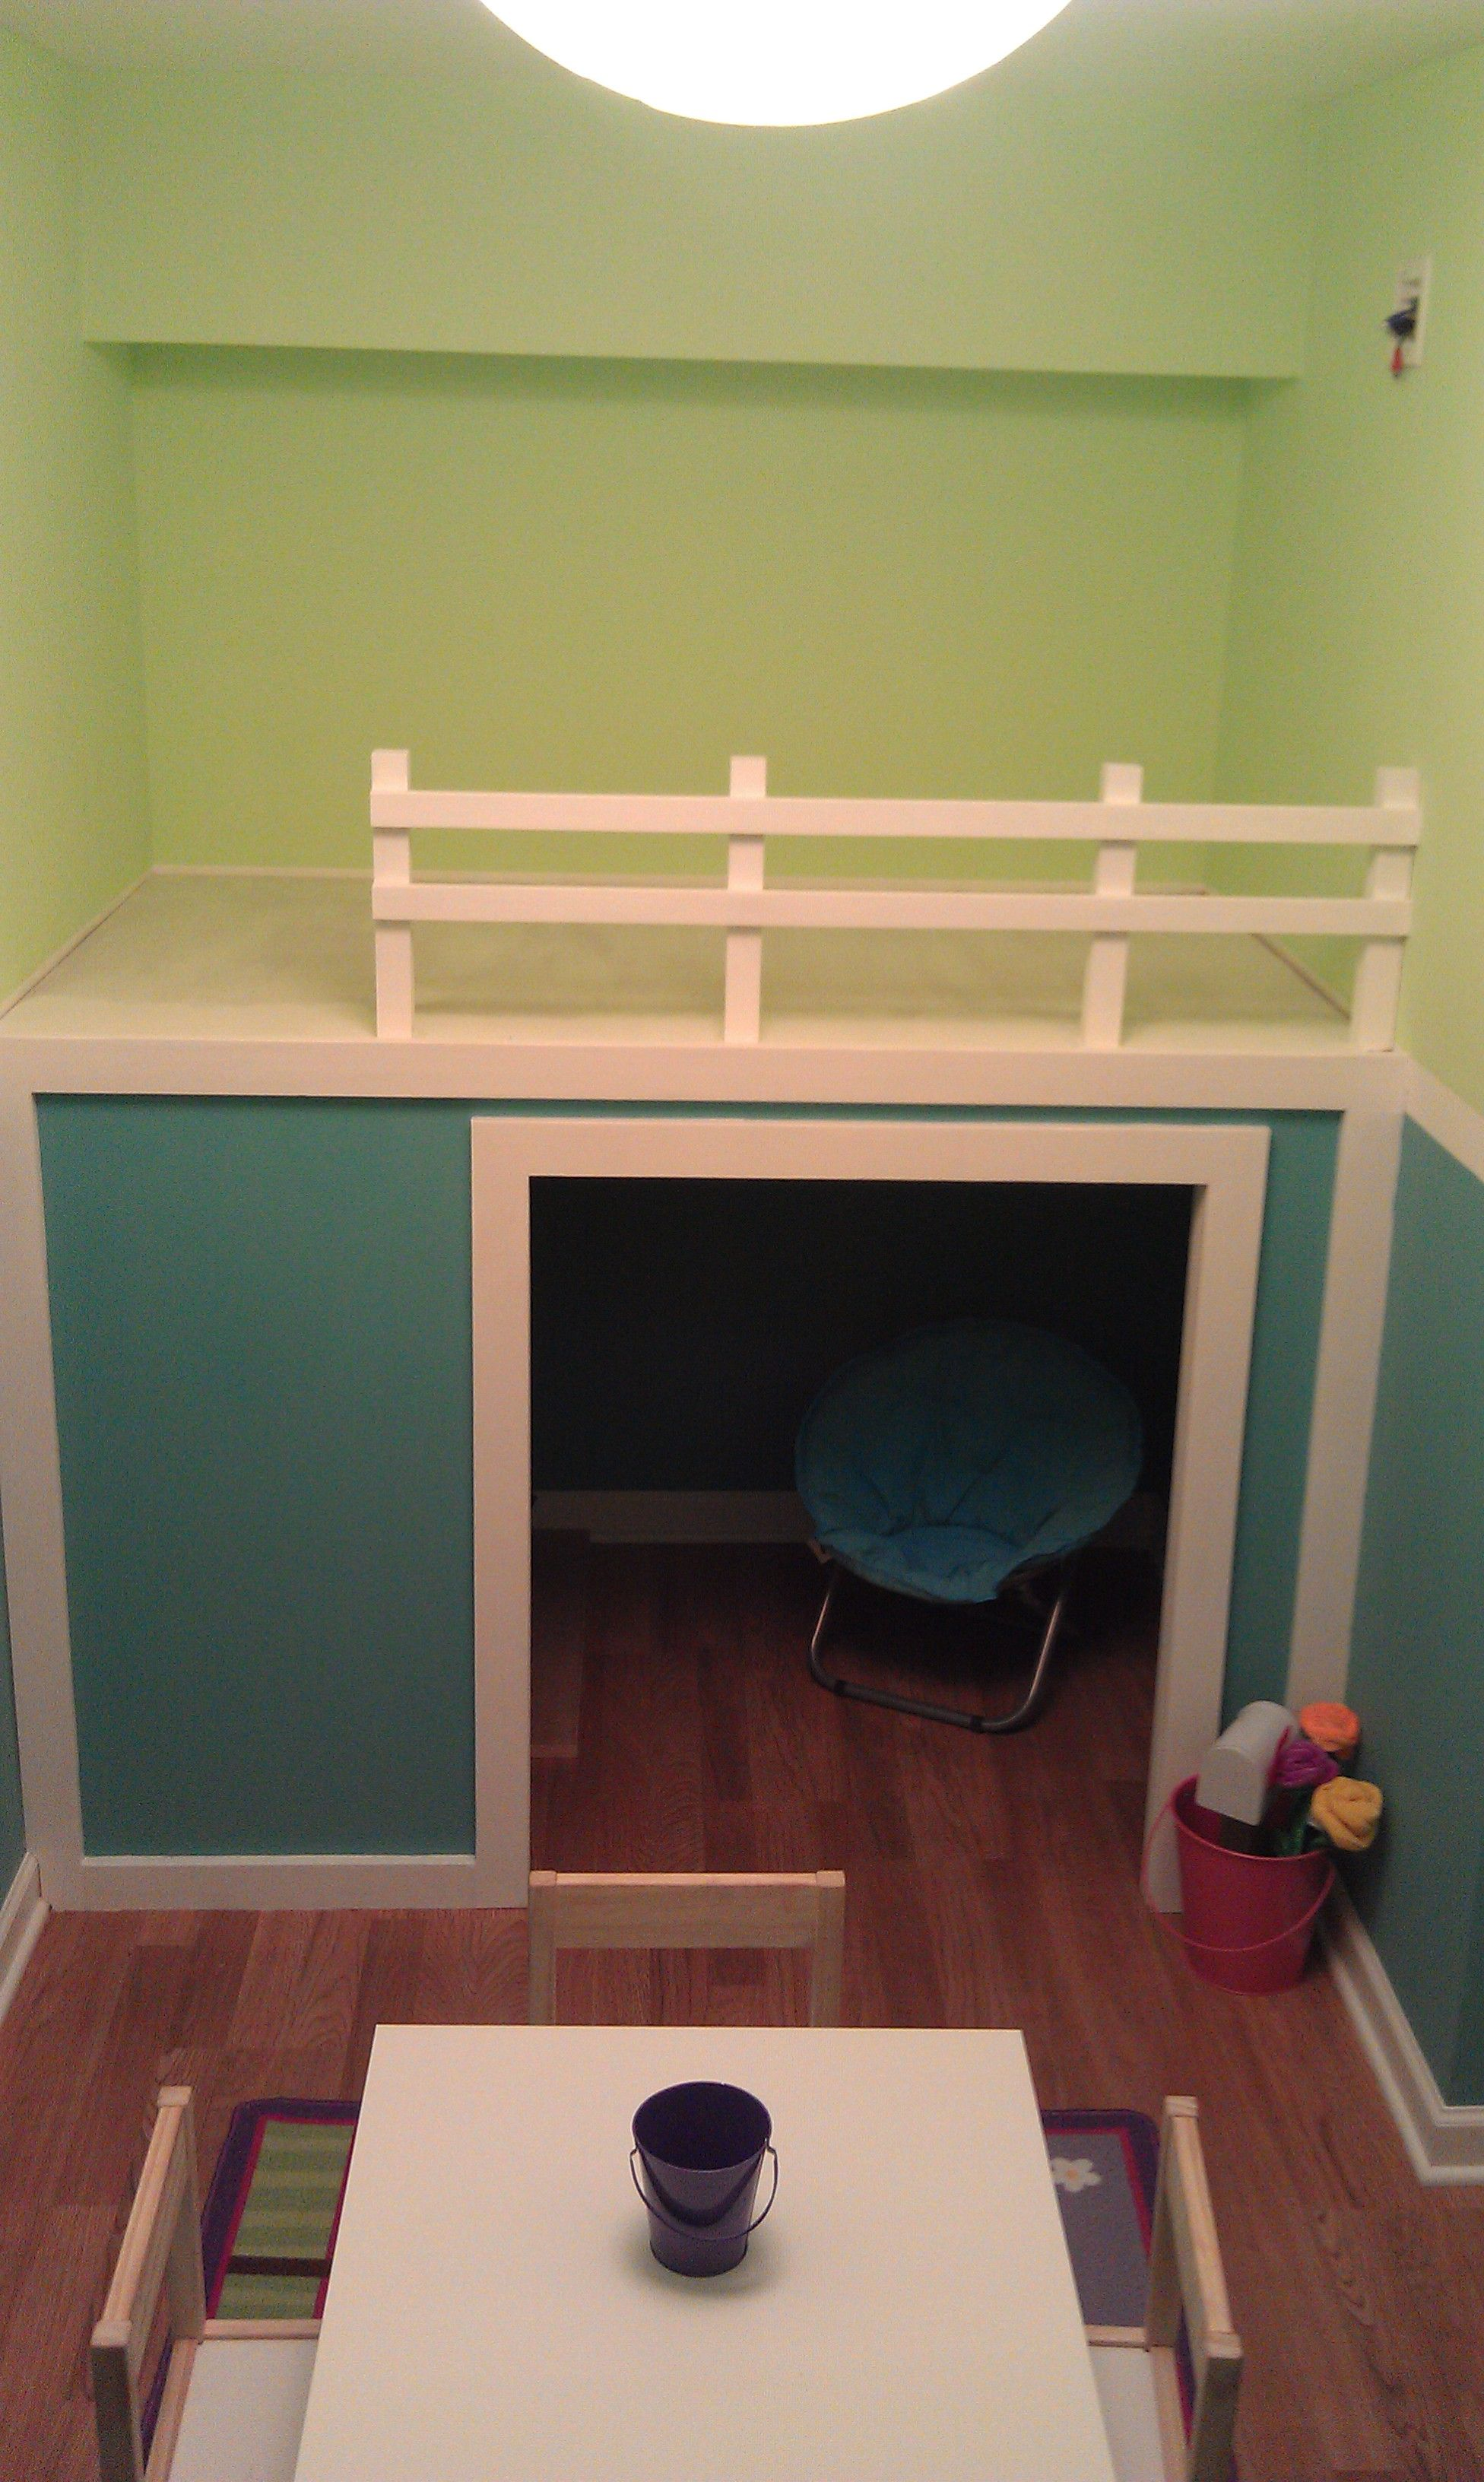 Playhouseloft bed in small playroom do it yourself home projects playhouseloft bed in small playroom diy projects solutioingenieria Images